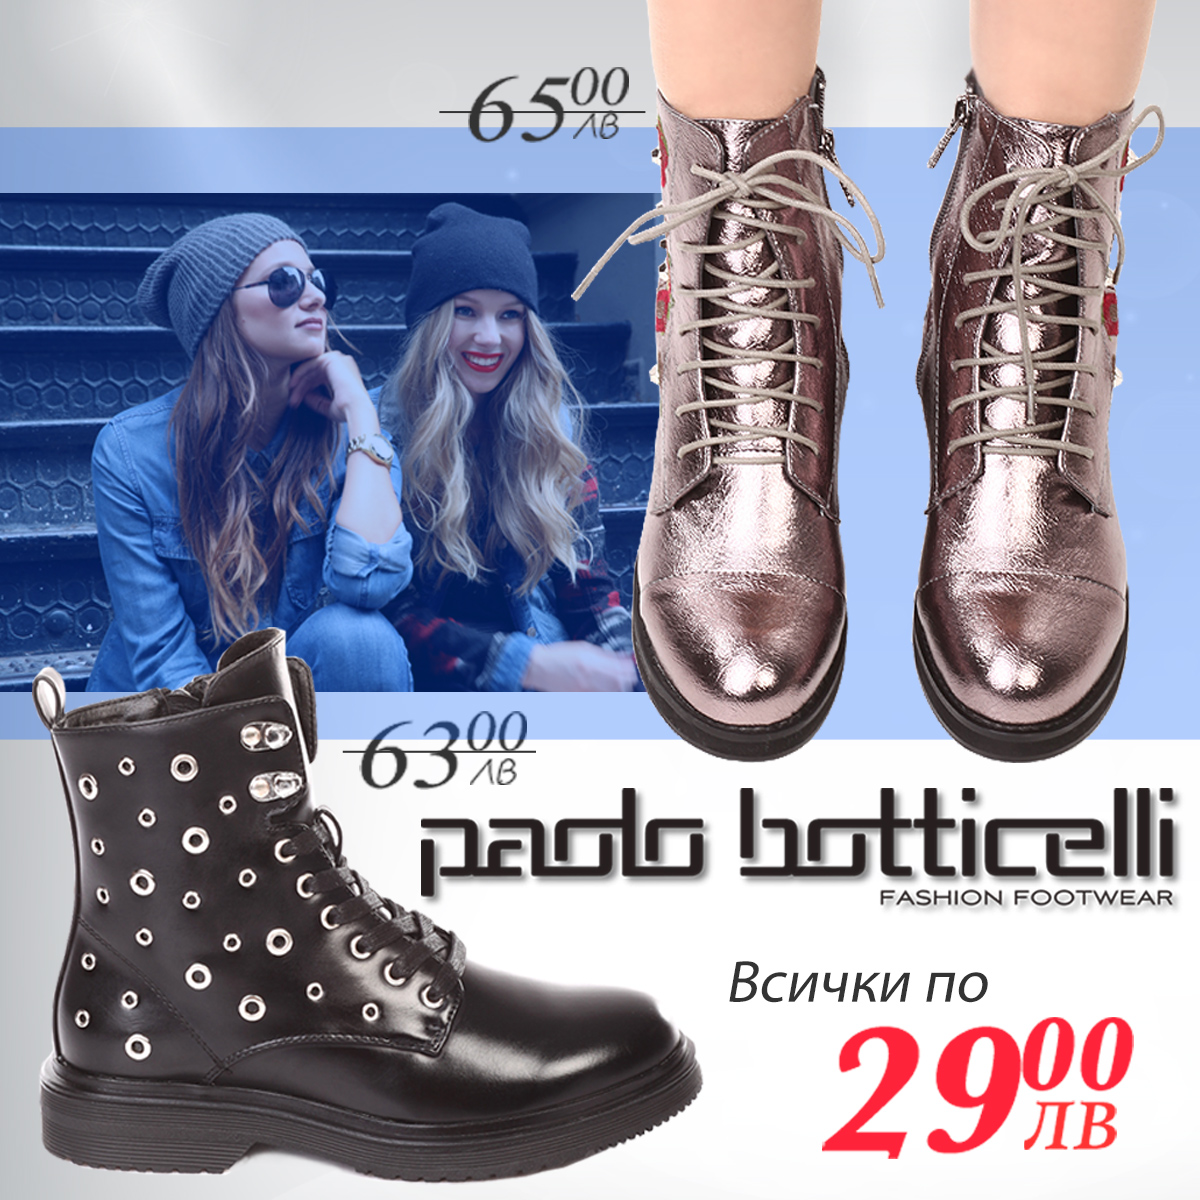 Take advantage of the discount at Paolo Botticelli